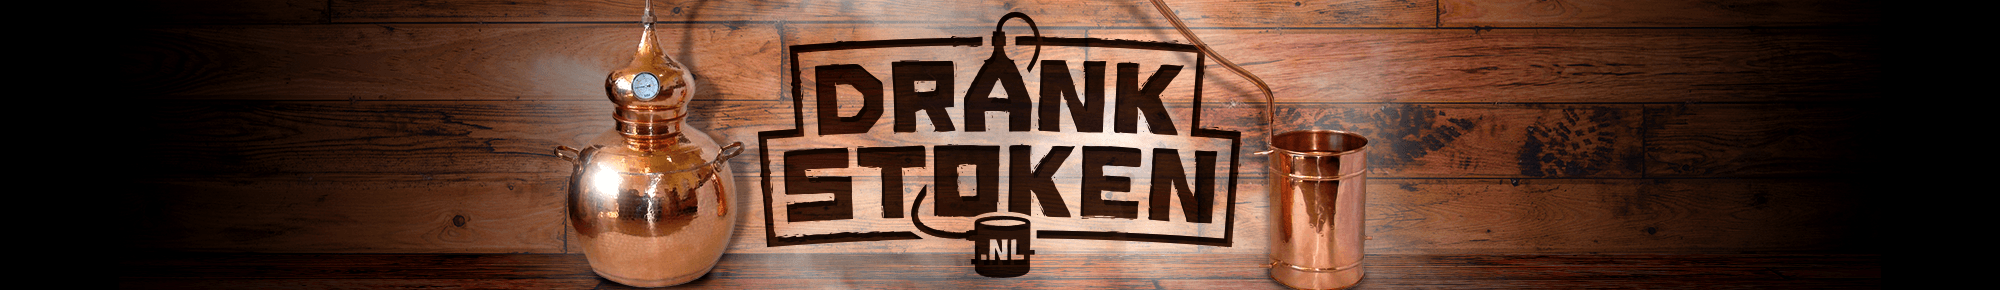 Drank Stoken website header